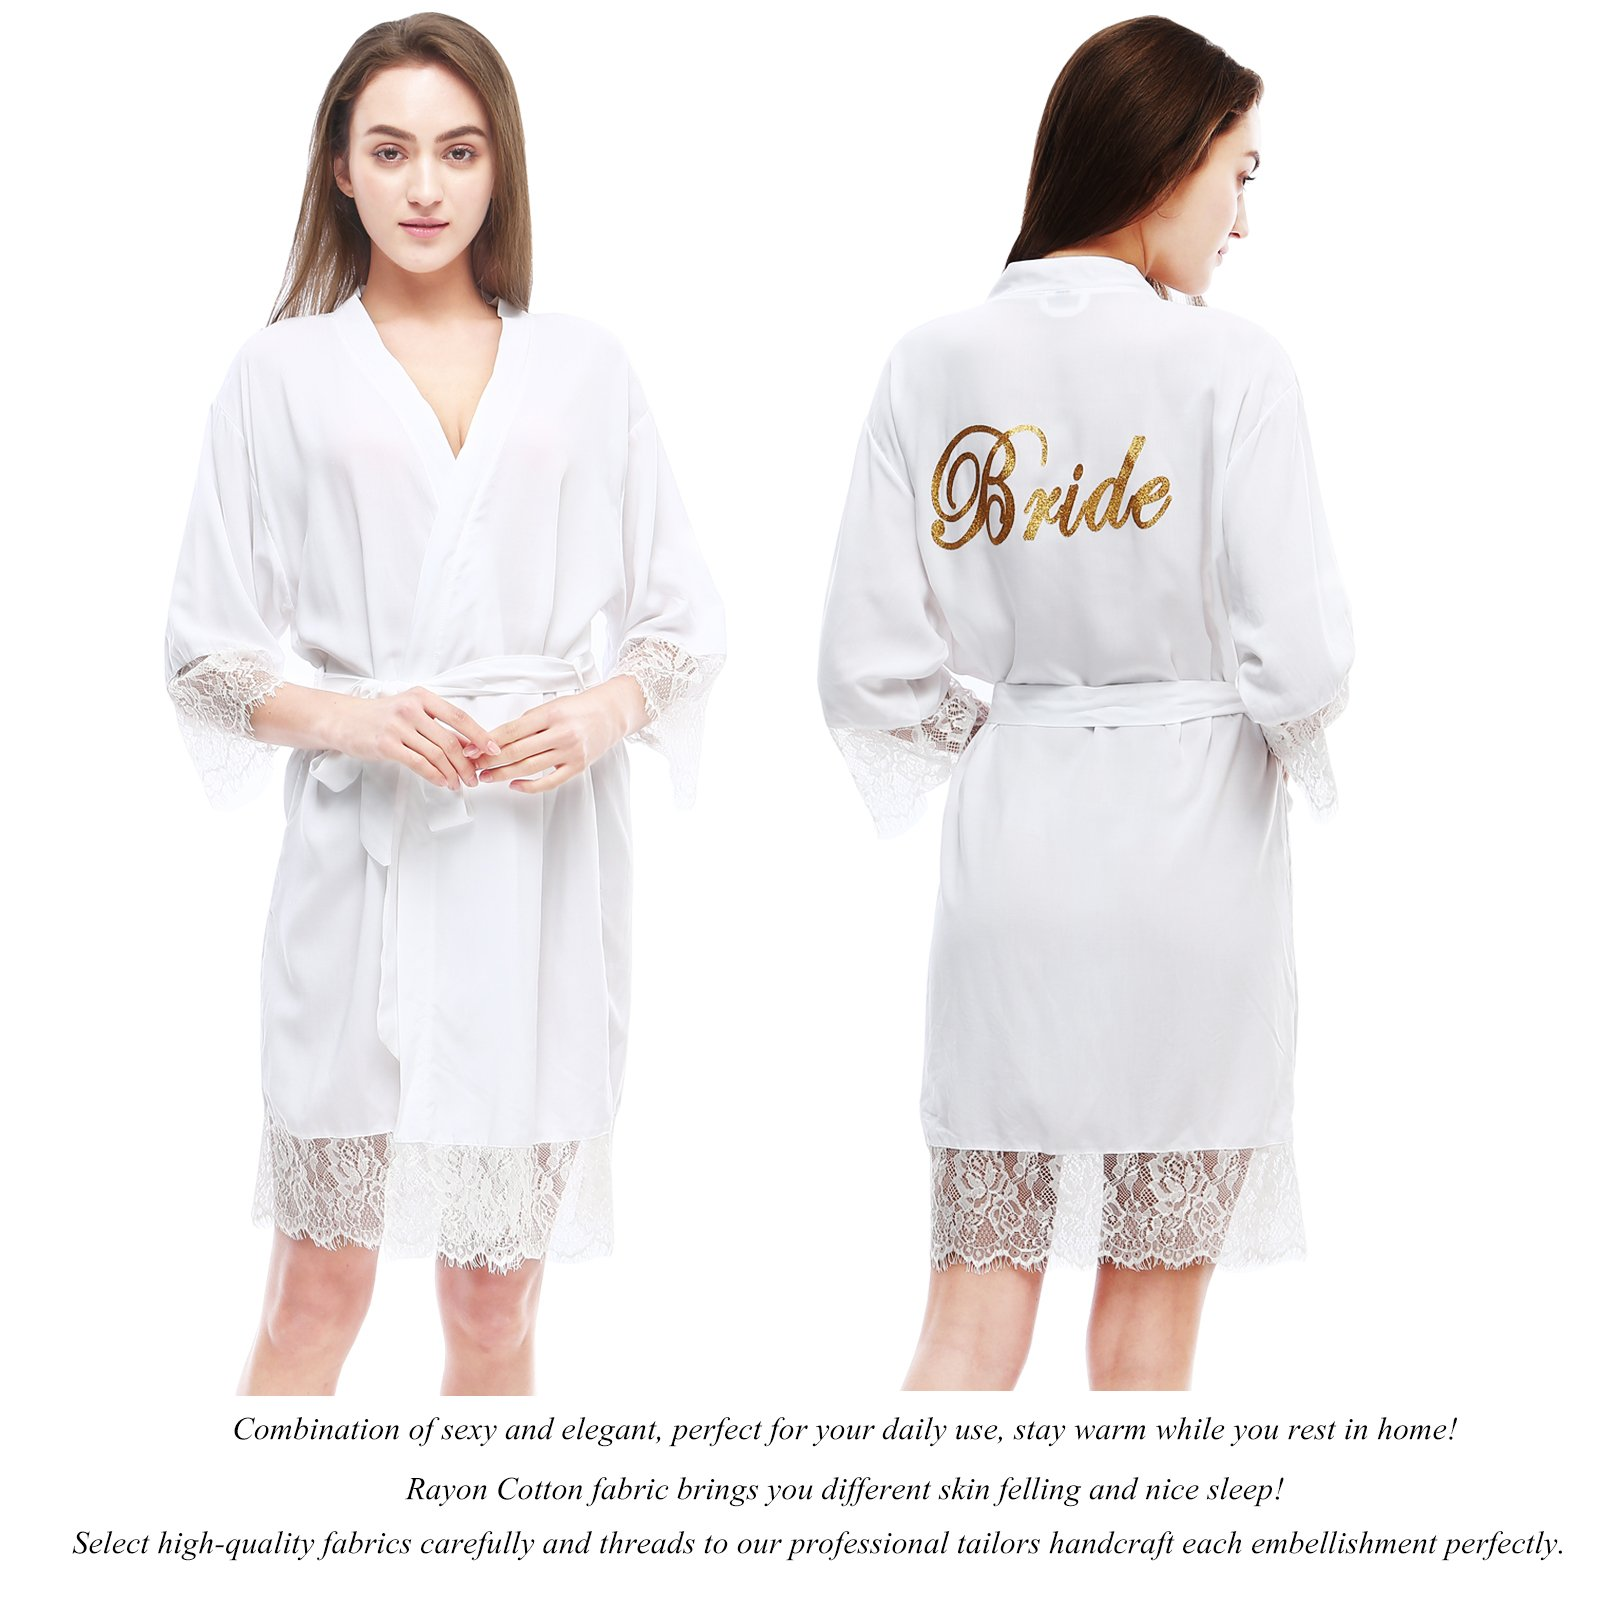 PROGULOVER Women's Set Of 10 Bridesmaid Robes For Wedding Cotton Kimono Bridal Party Getting Ready Robe With Blush Gold Glitter by PROGULOVER (Image #4)